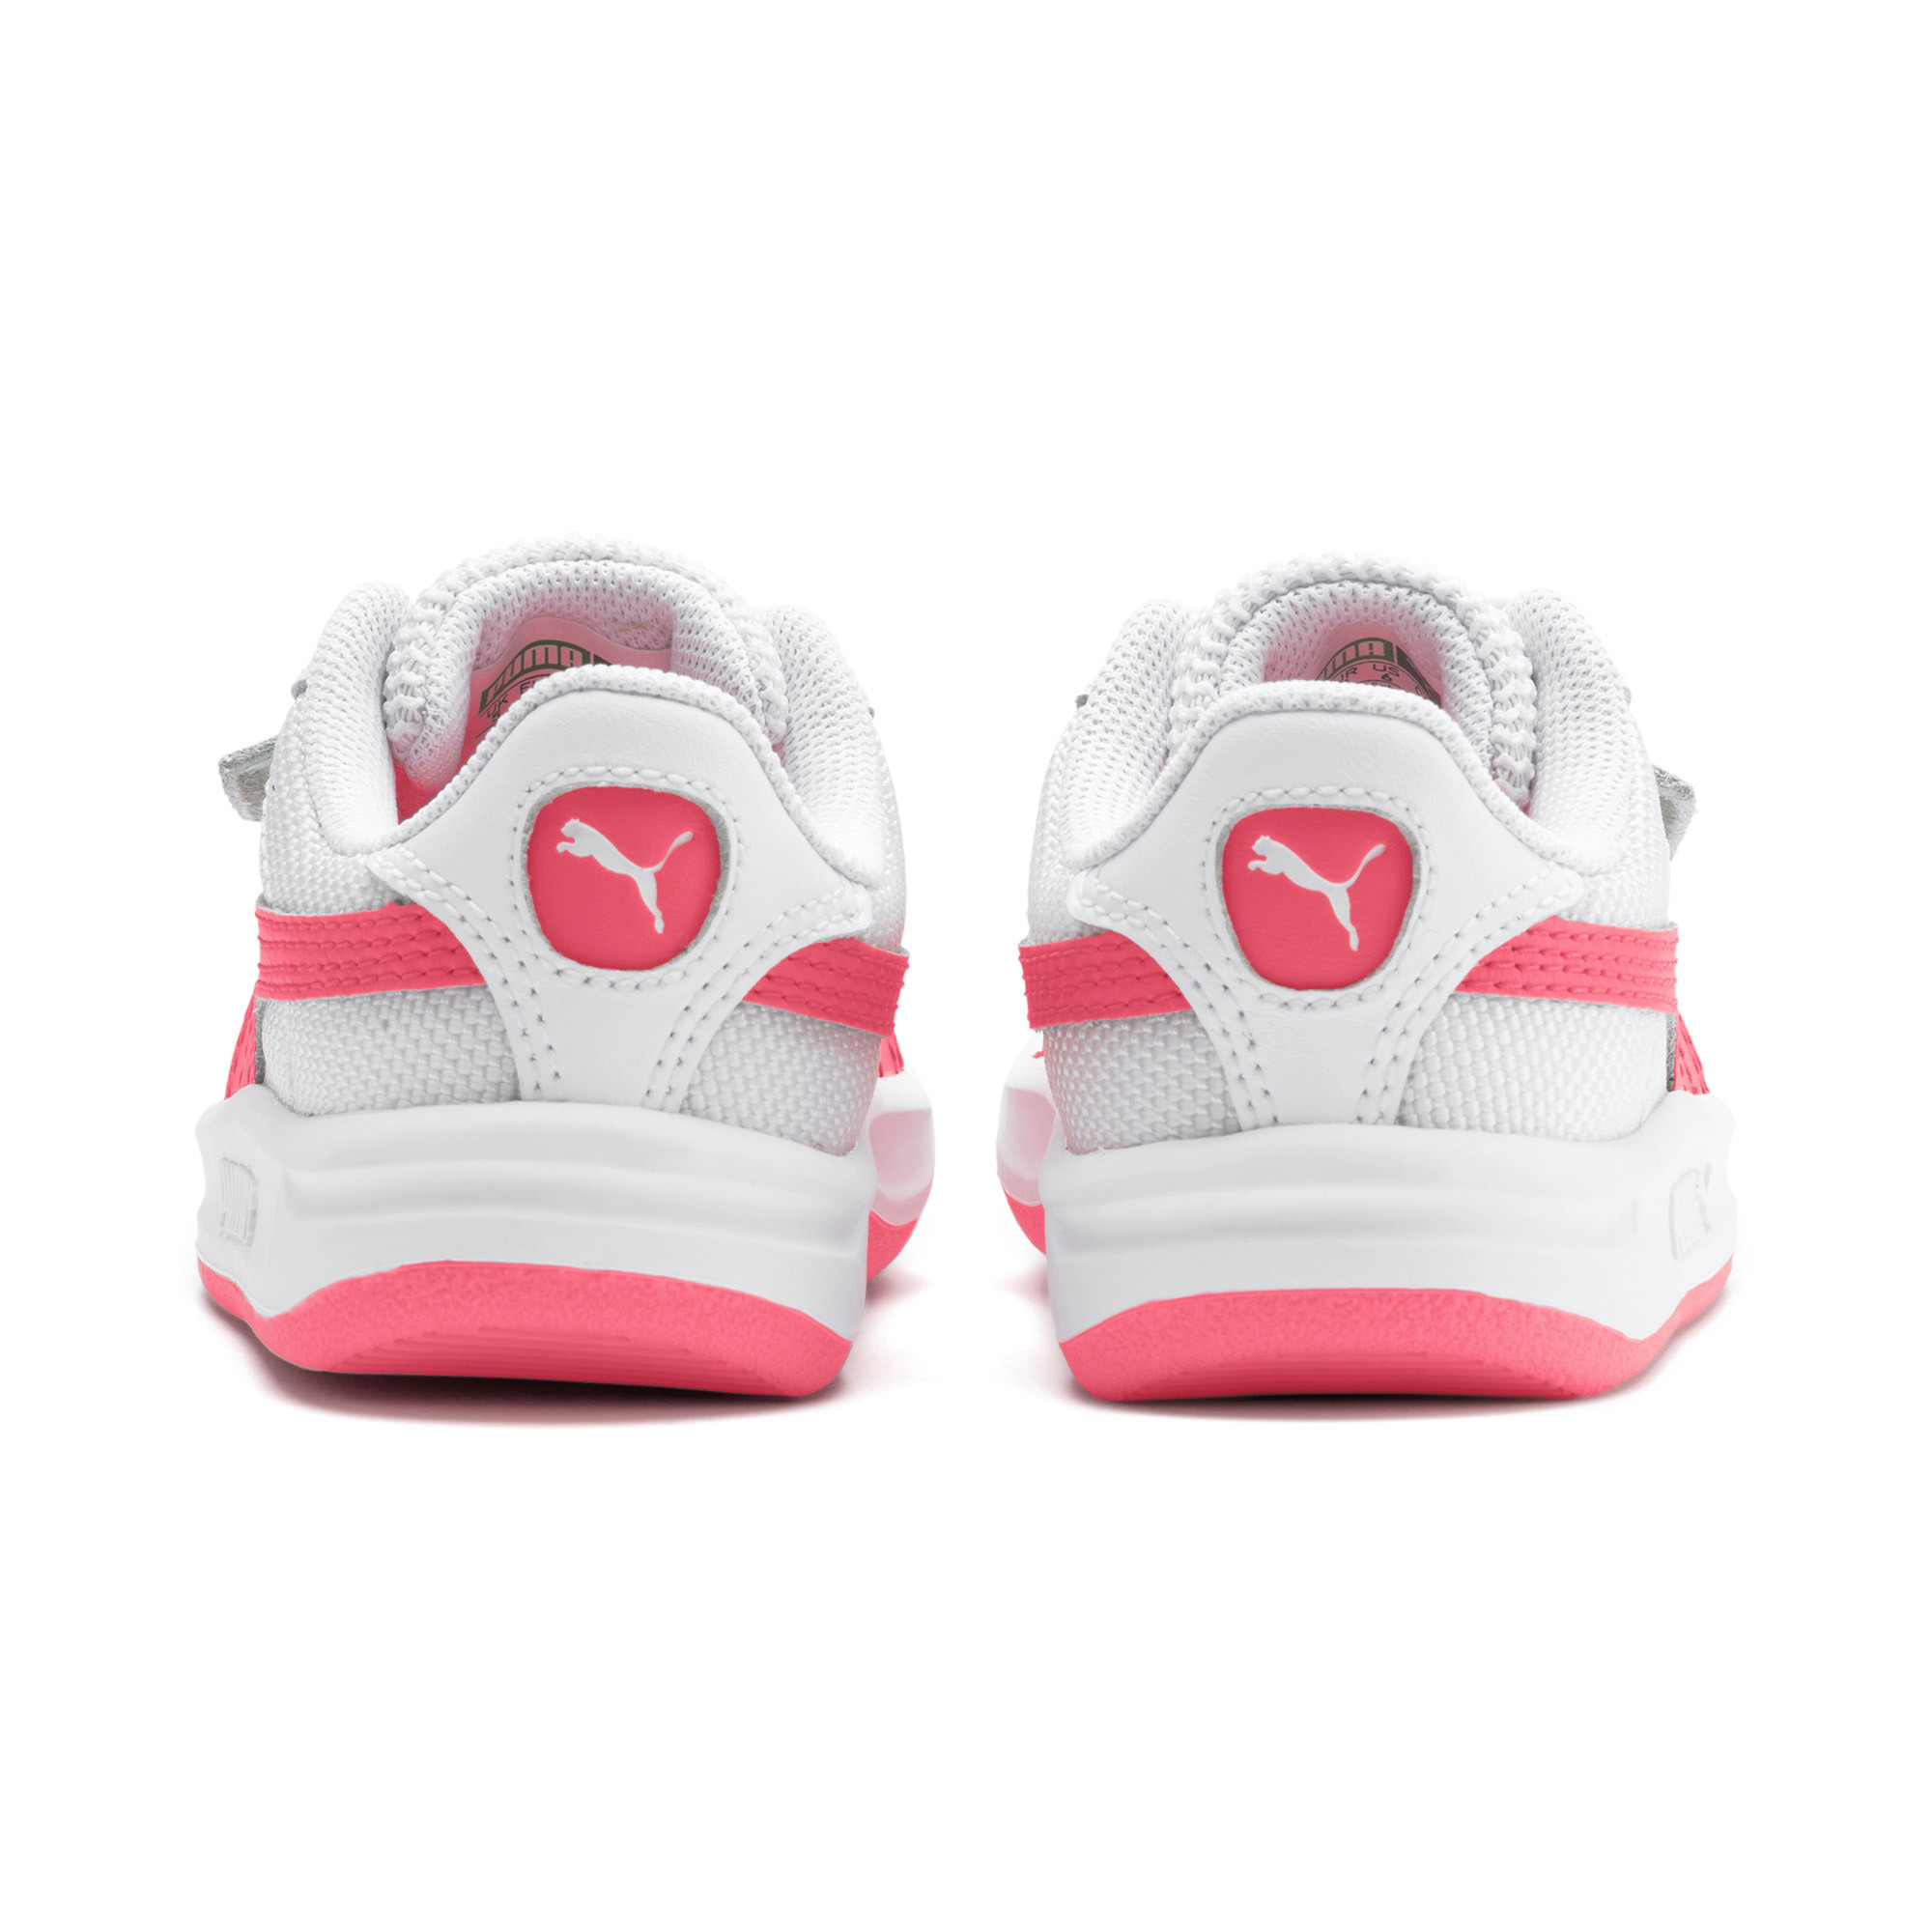 PUMA-California-Toddler-Shoes-Kids-Shoe-Kids thumbnail 9